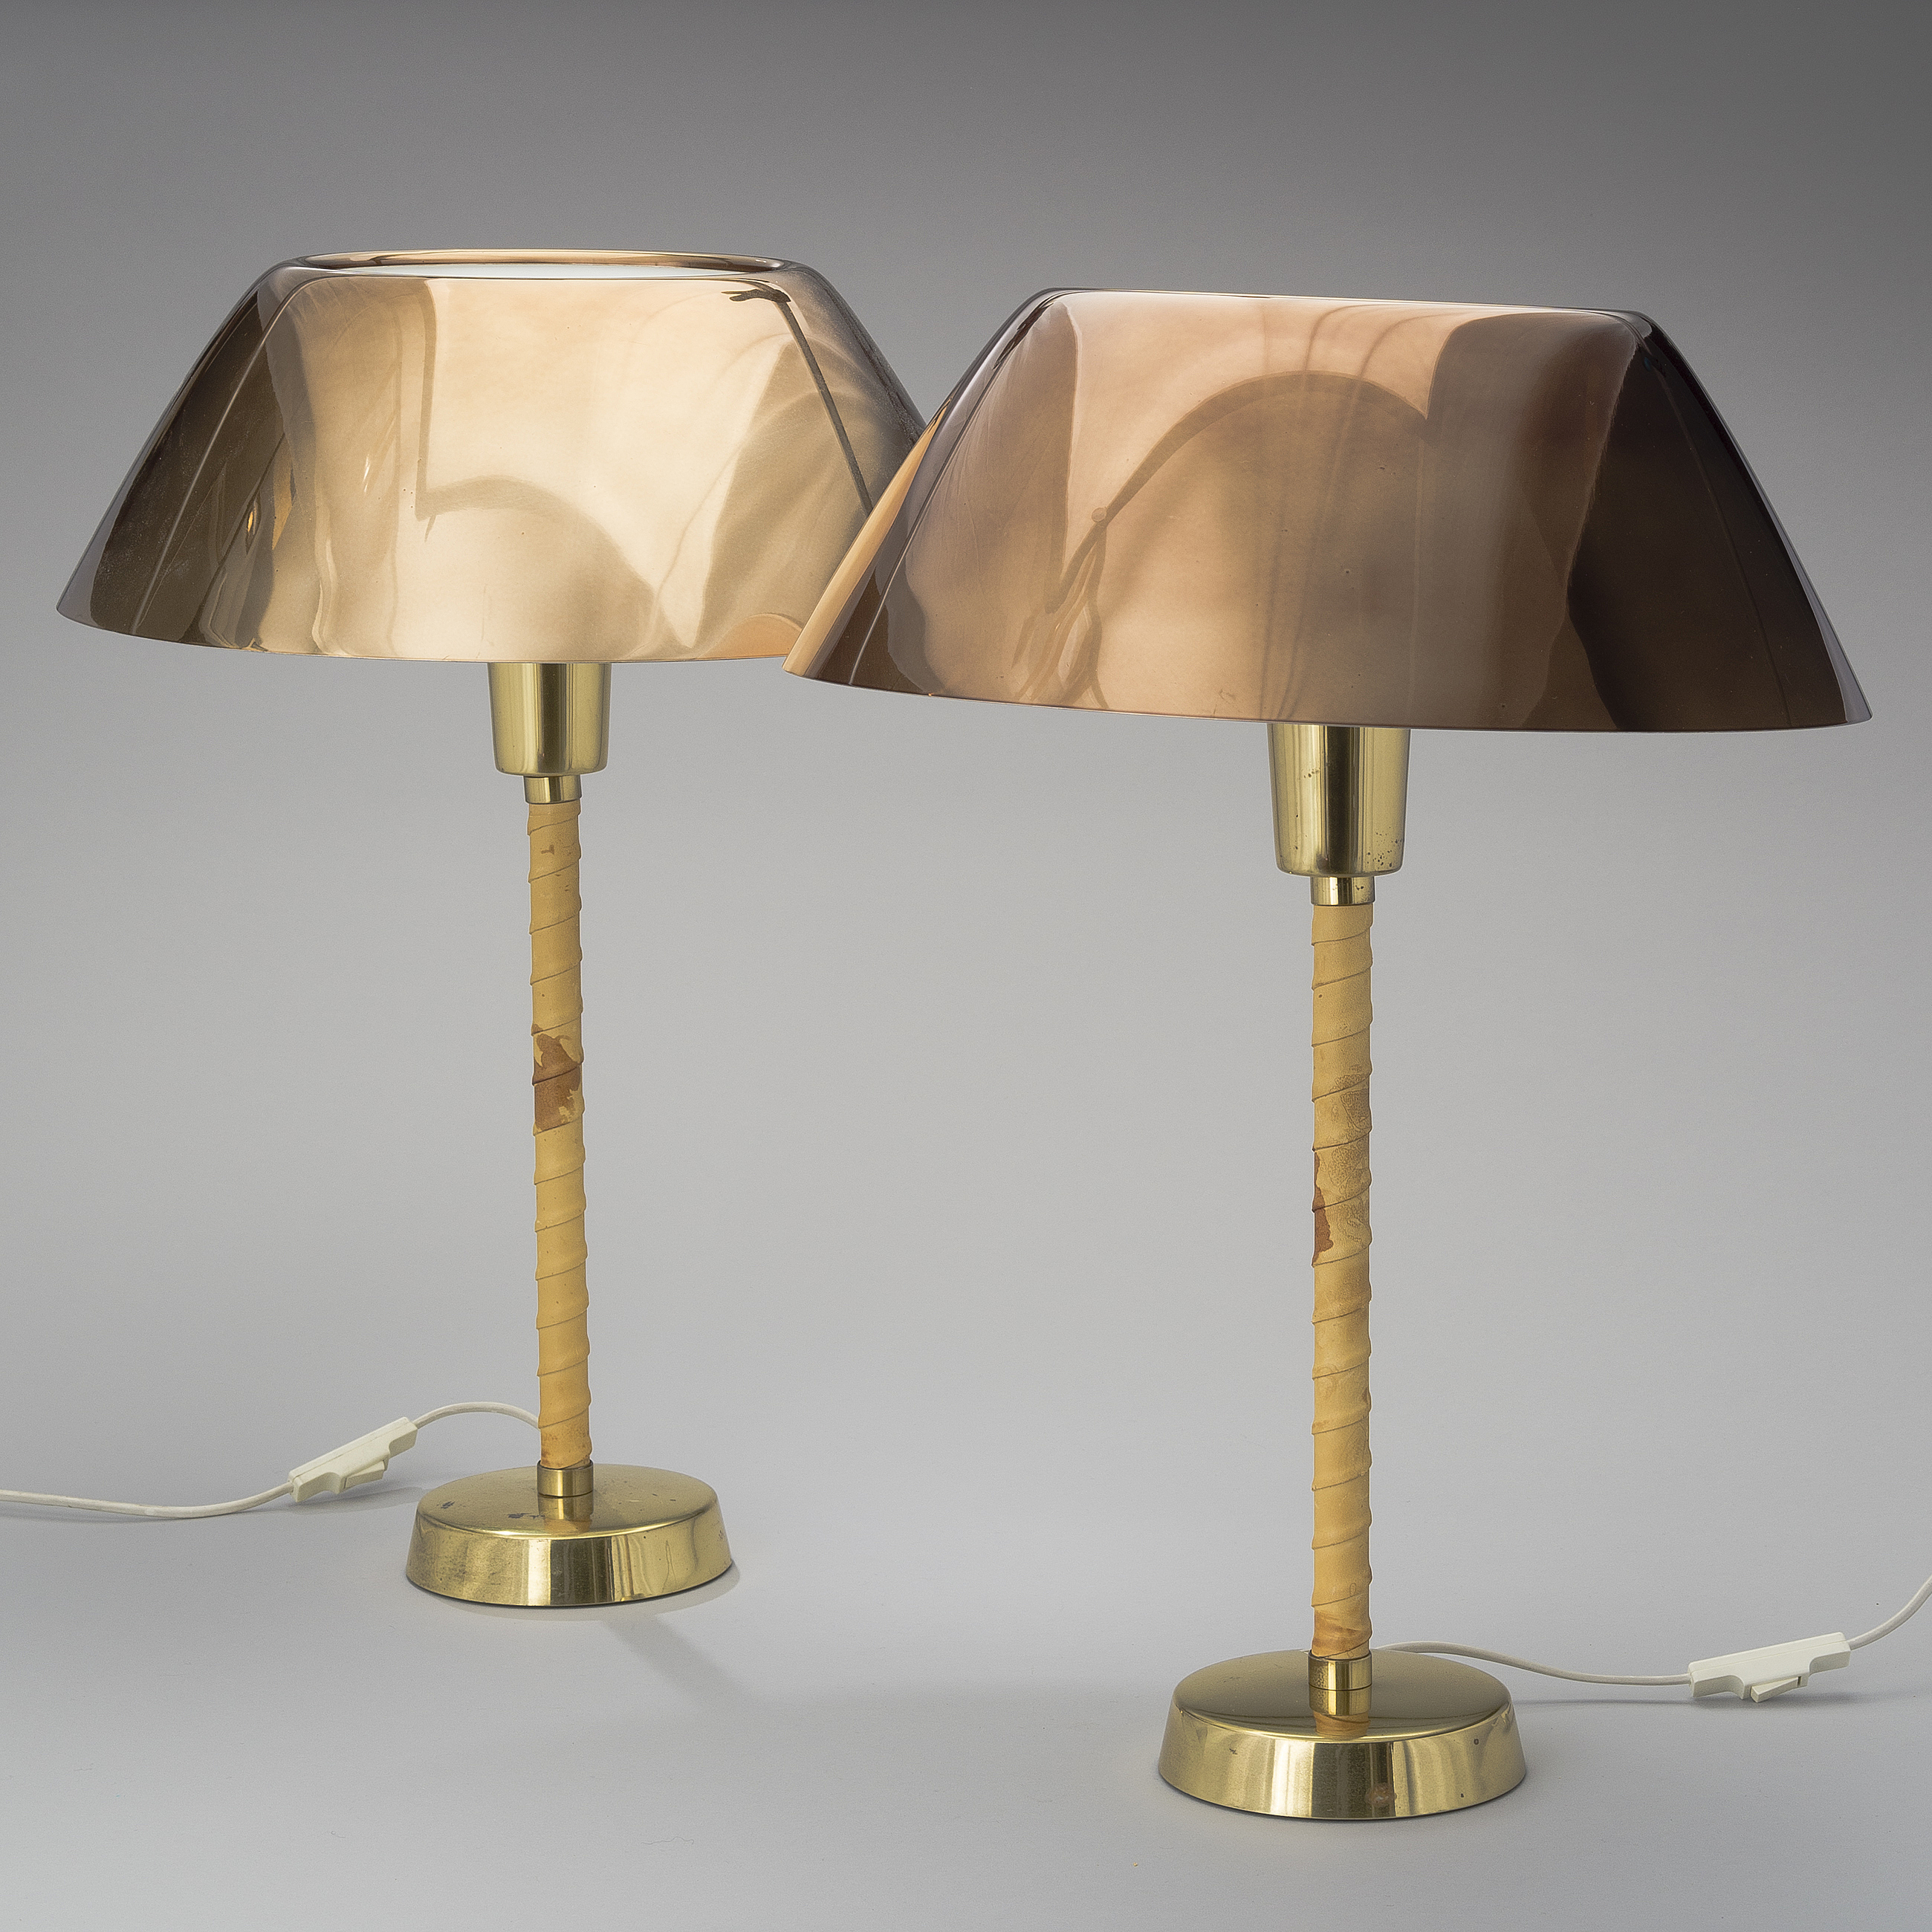 Set Of Two Table Lamps Lisa Johansson Pape Lisa Johansson Pape A Set Of Two Table Lamps